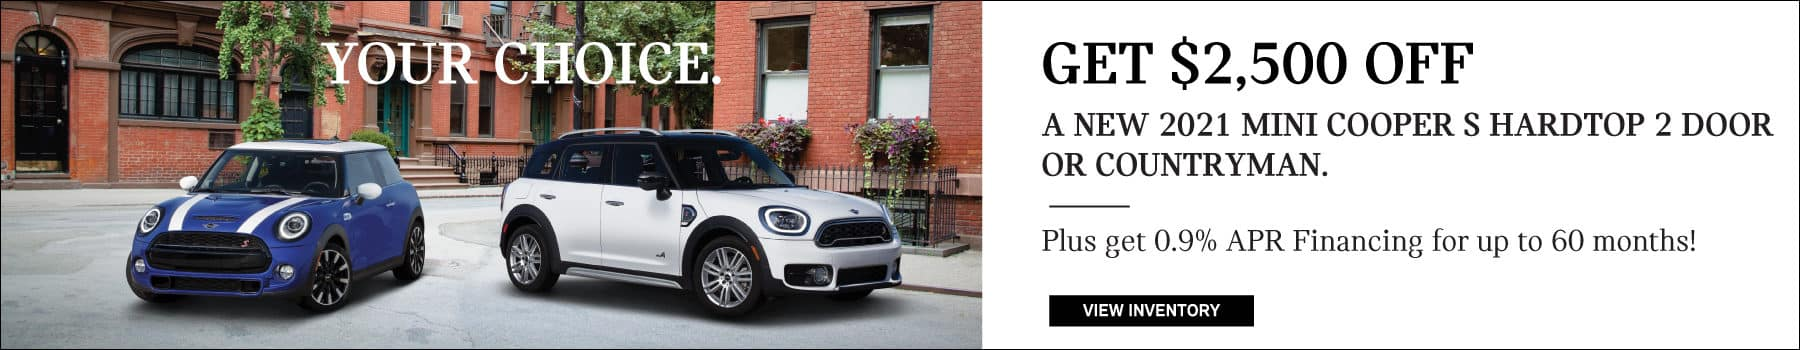 Get$2500 off a 2021 MINI Cooper S Hardtop 2 Door or Countryman. Plus APR Financing for up to 60 months..